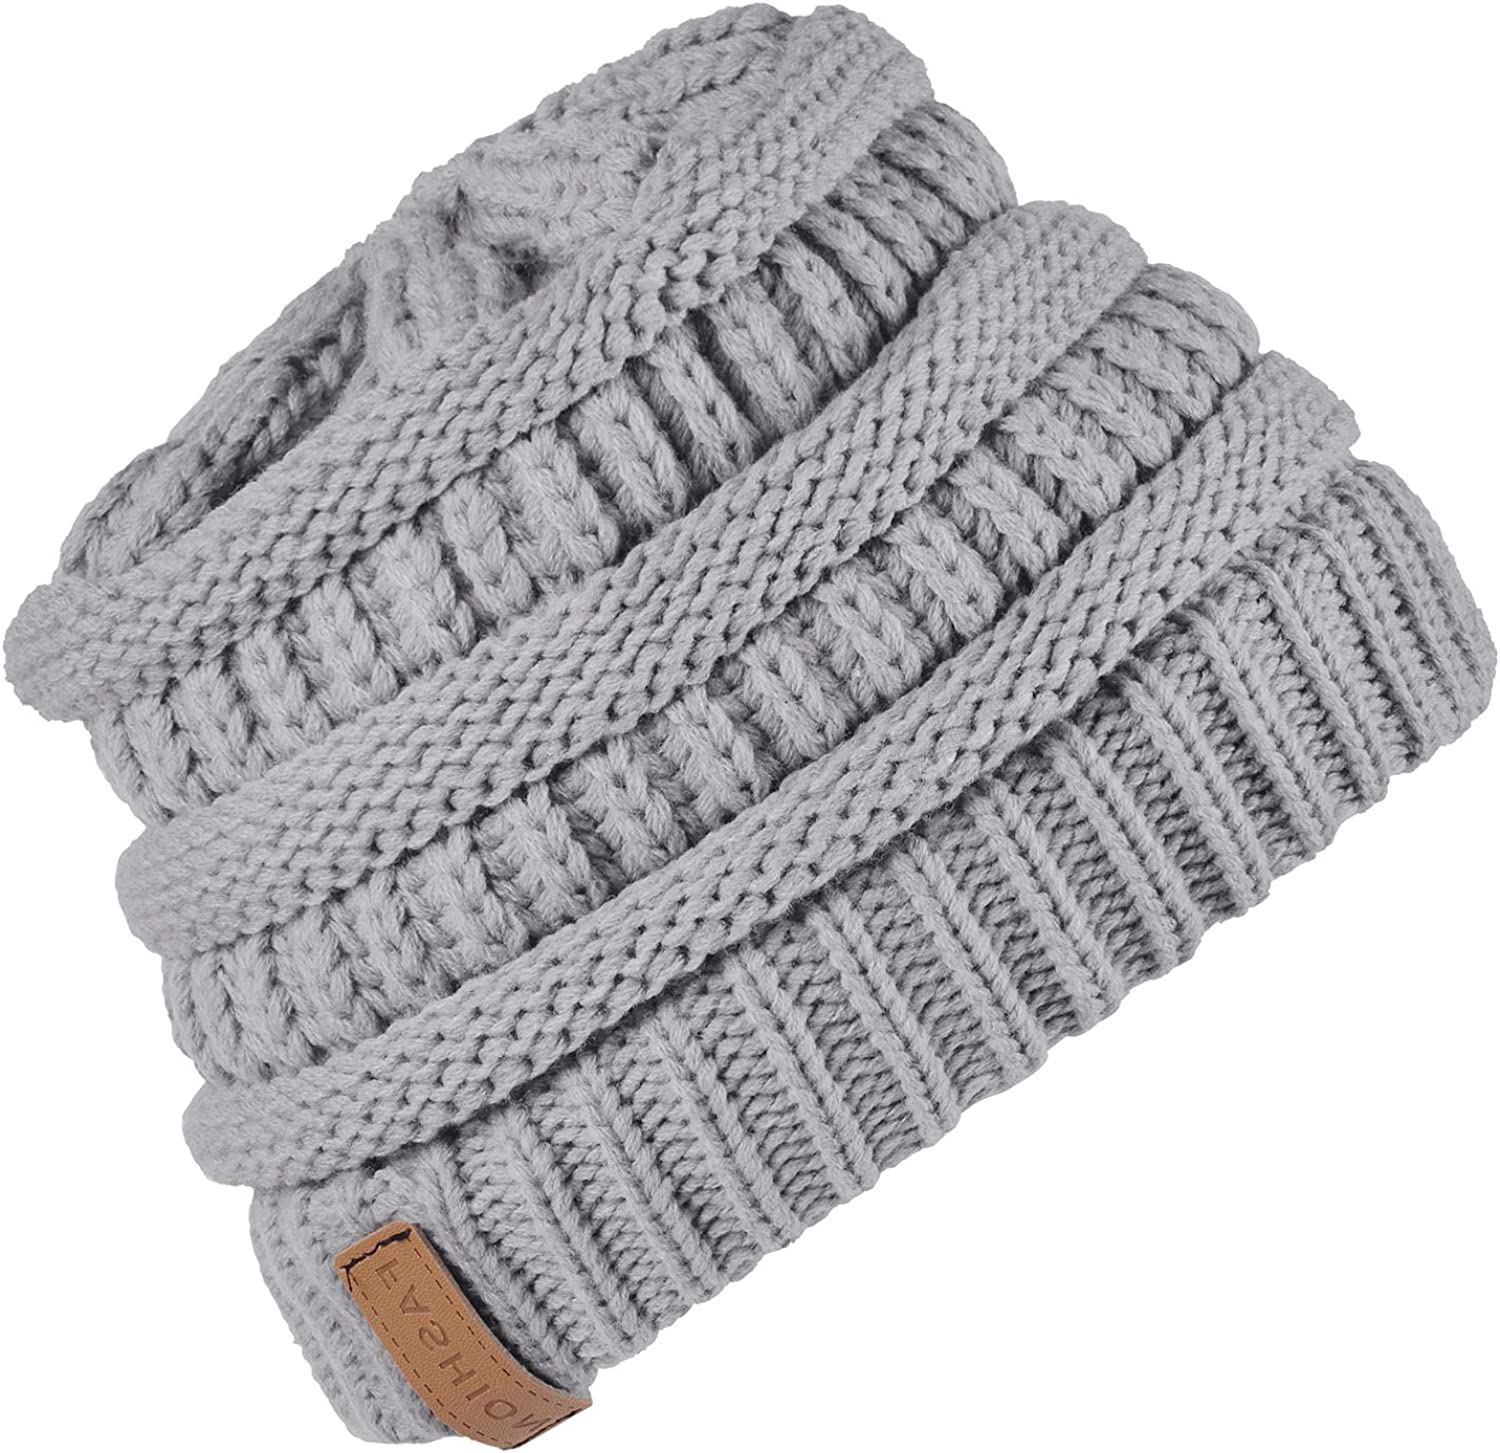 DESTTY Unisex Winter Warm Slouchy Knitted Beanie Hats Soft Stretch Chunky Skull Cap for Women & Men